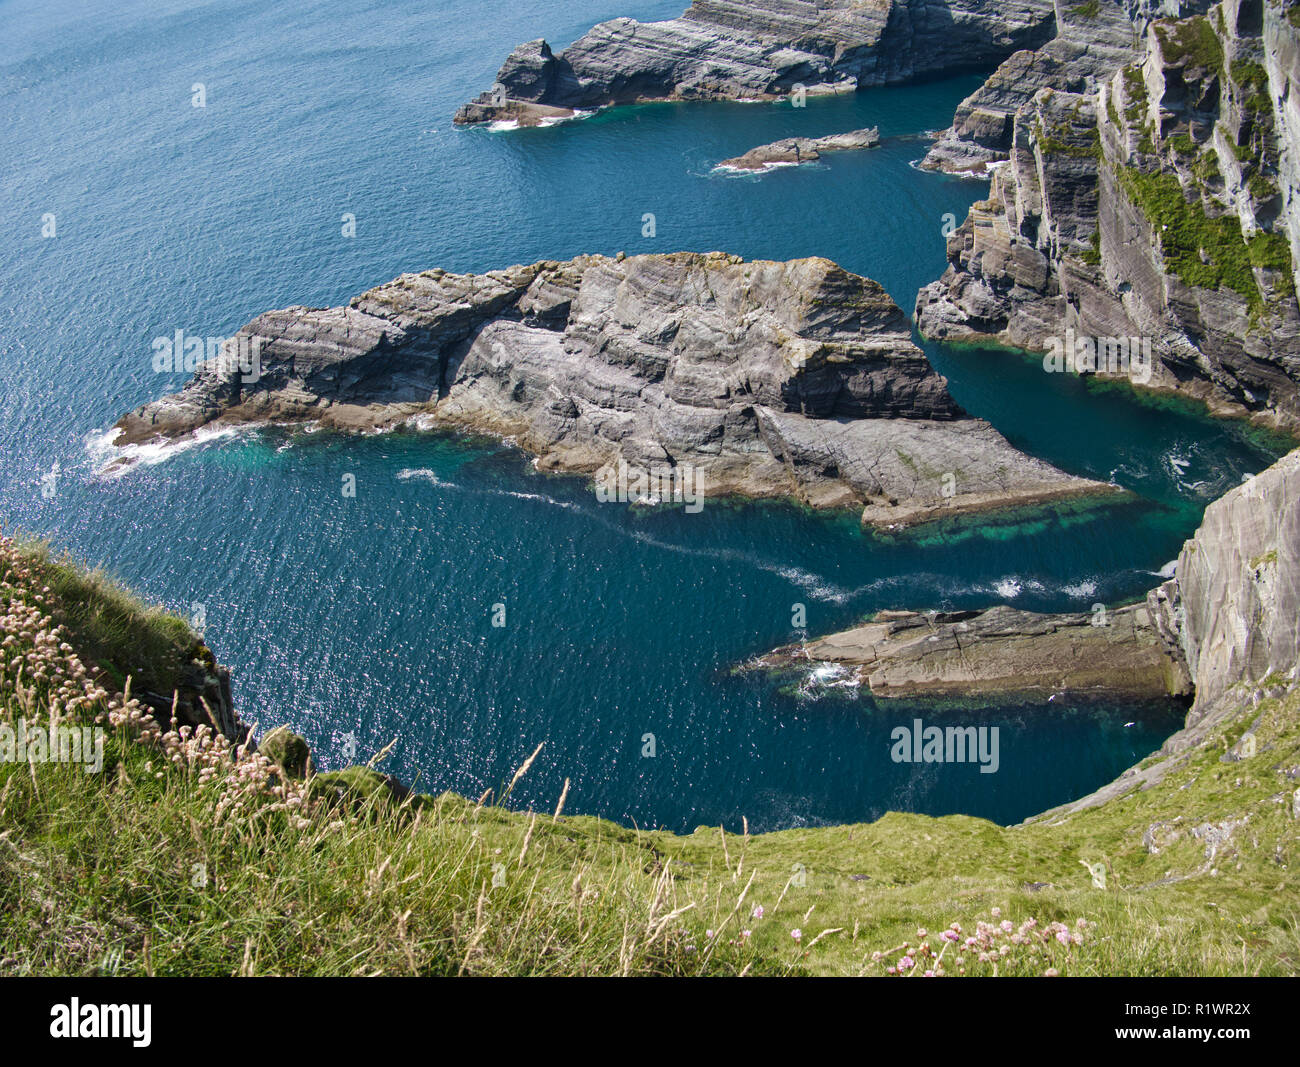 View of the sea at the Cliffs of Kerry near Portmagee in Ireland Stock Photo